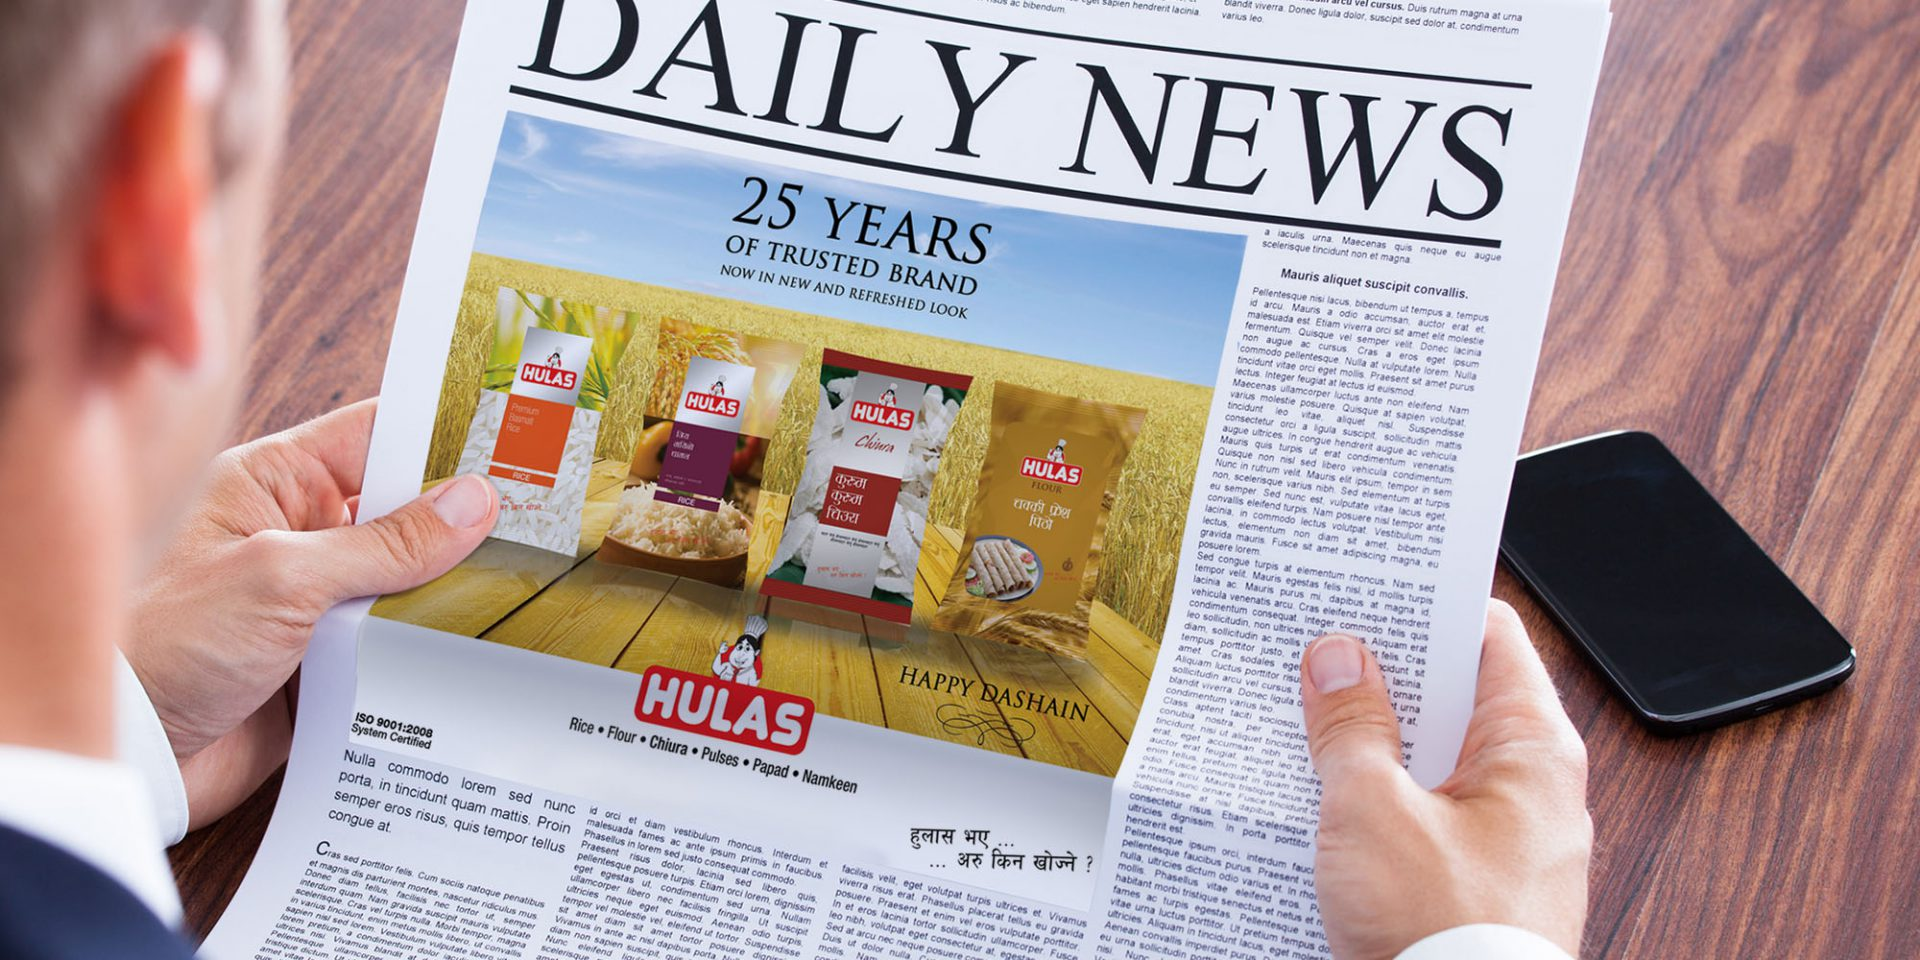 Hulas Food Product Range Newspaper Ad